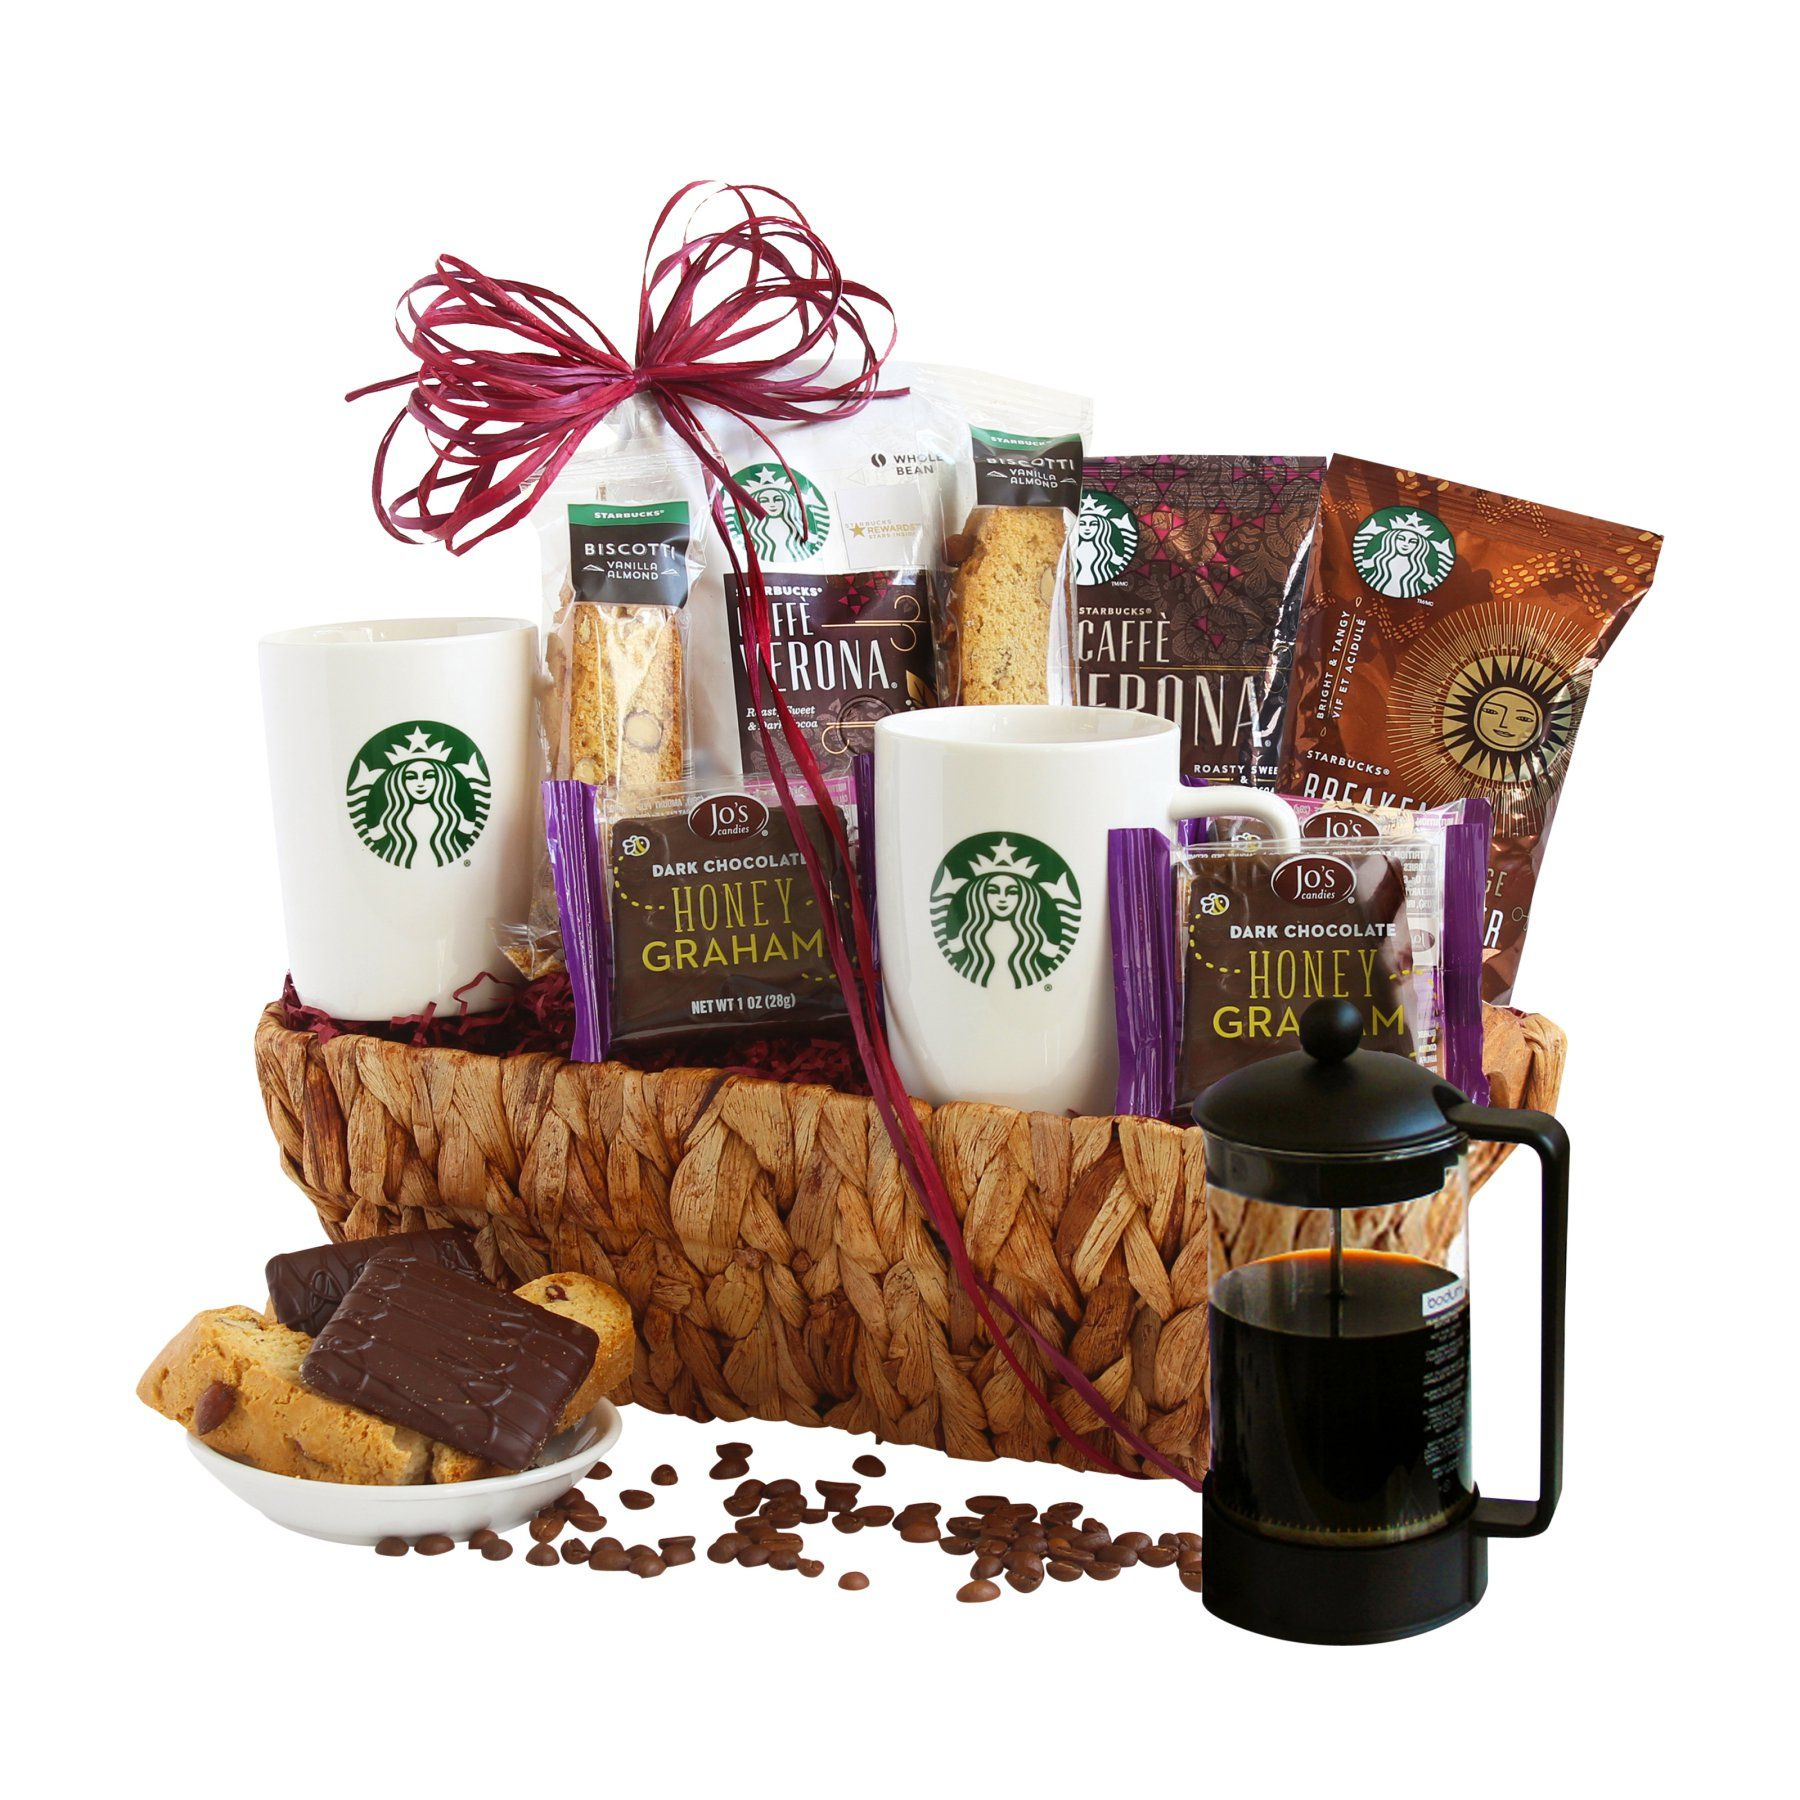 California Delicious Starbucks Lovers Gift Basket with